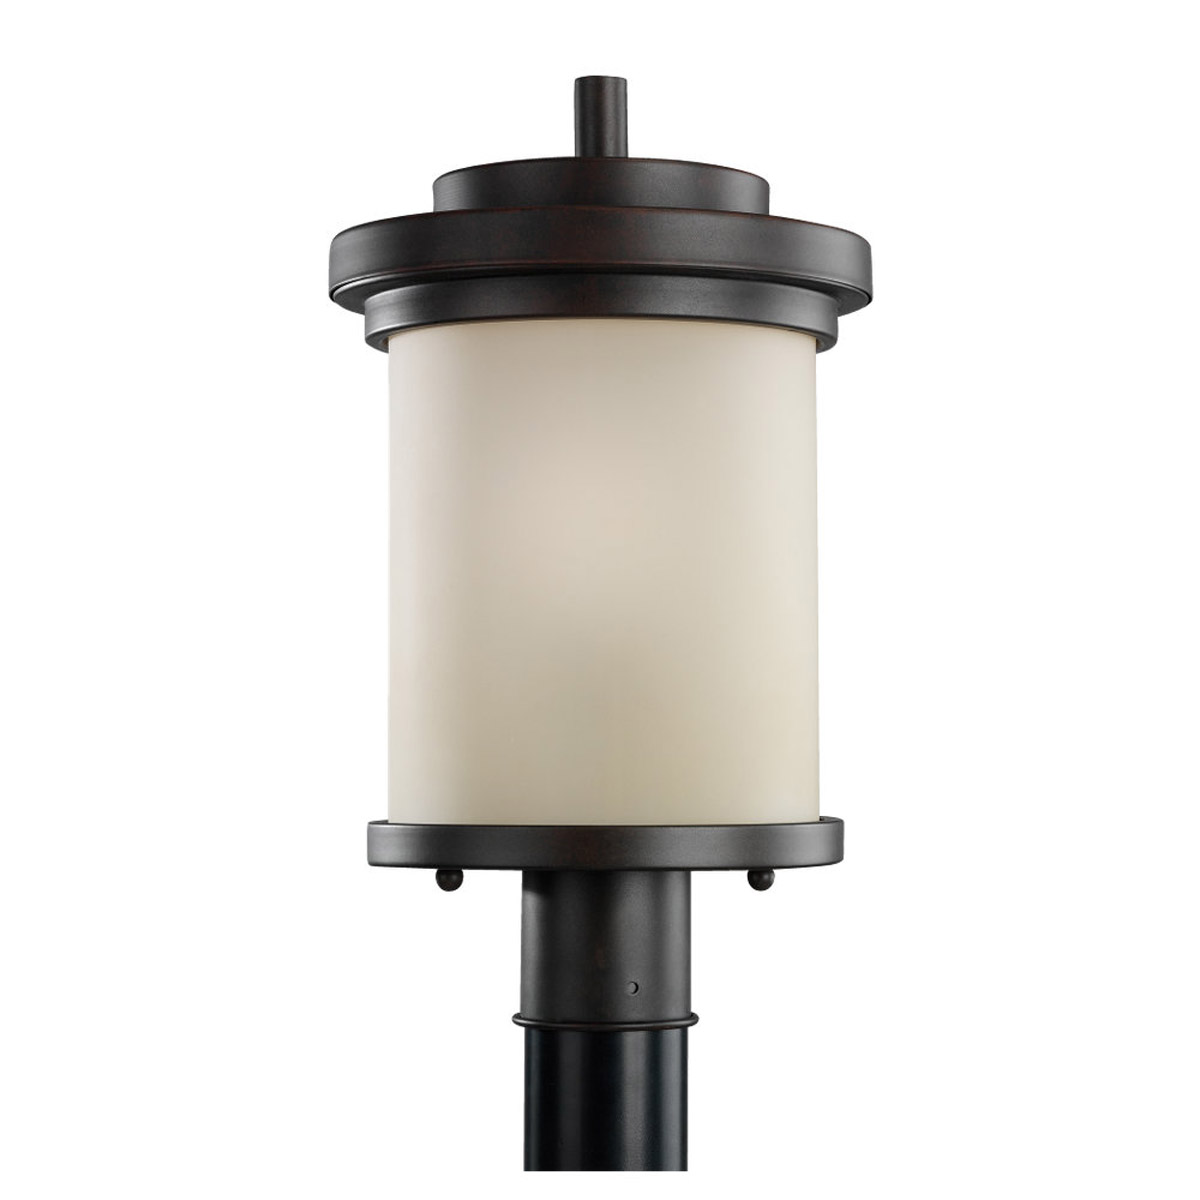 Sea Gull 82660-814 Winnetka 1 Light 18 inch Misted Bronze Outdoor Post Lantern in Cafe Tint Glass photo